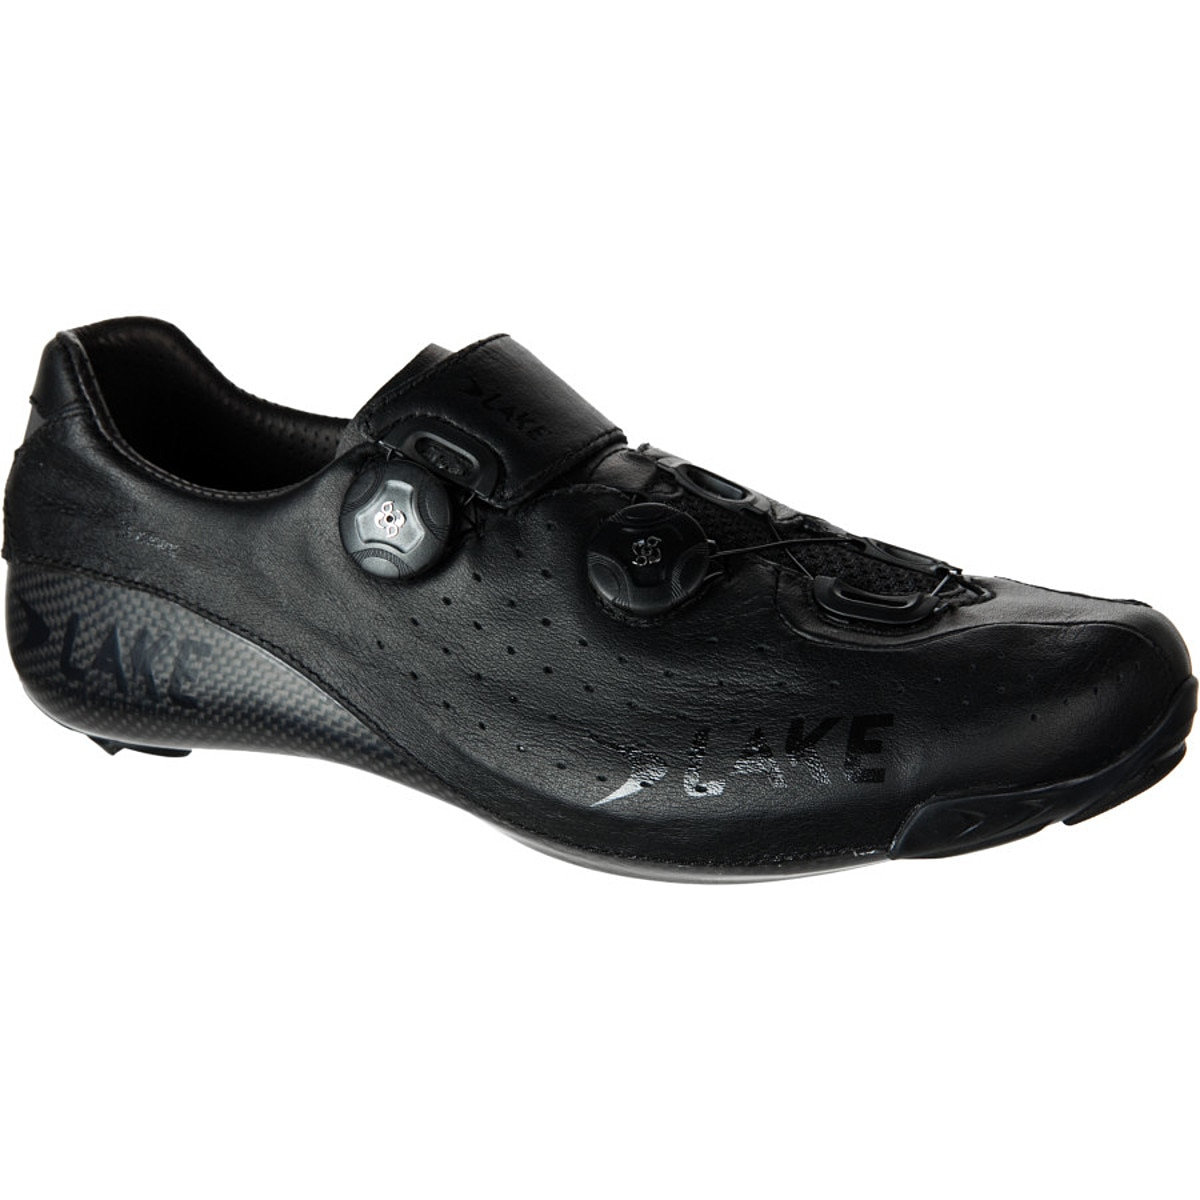 Lake CX402 Shoes Men's